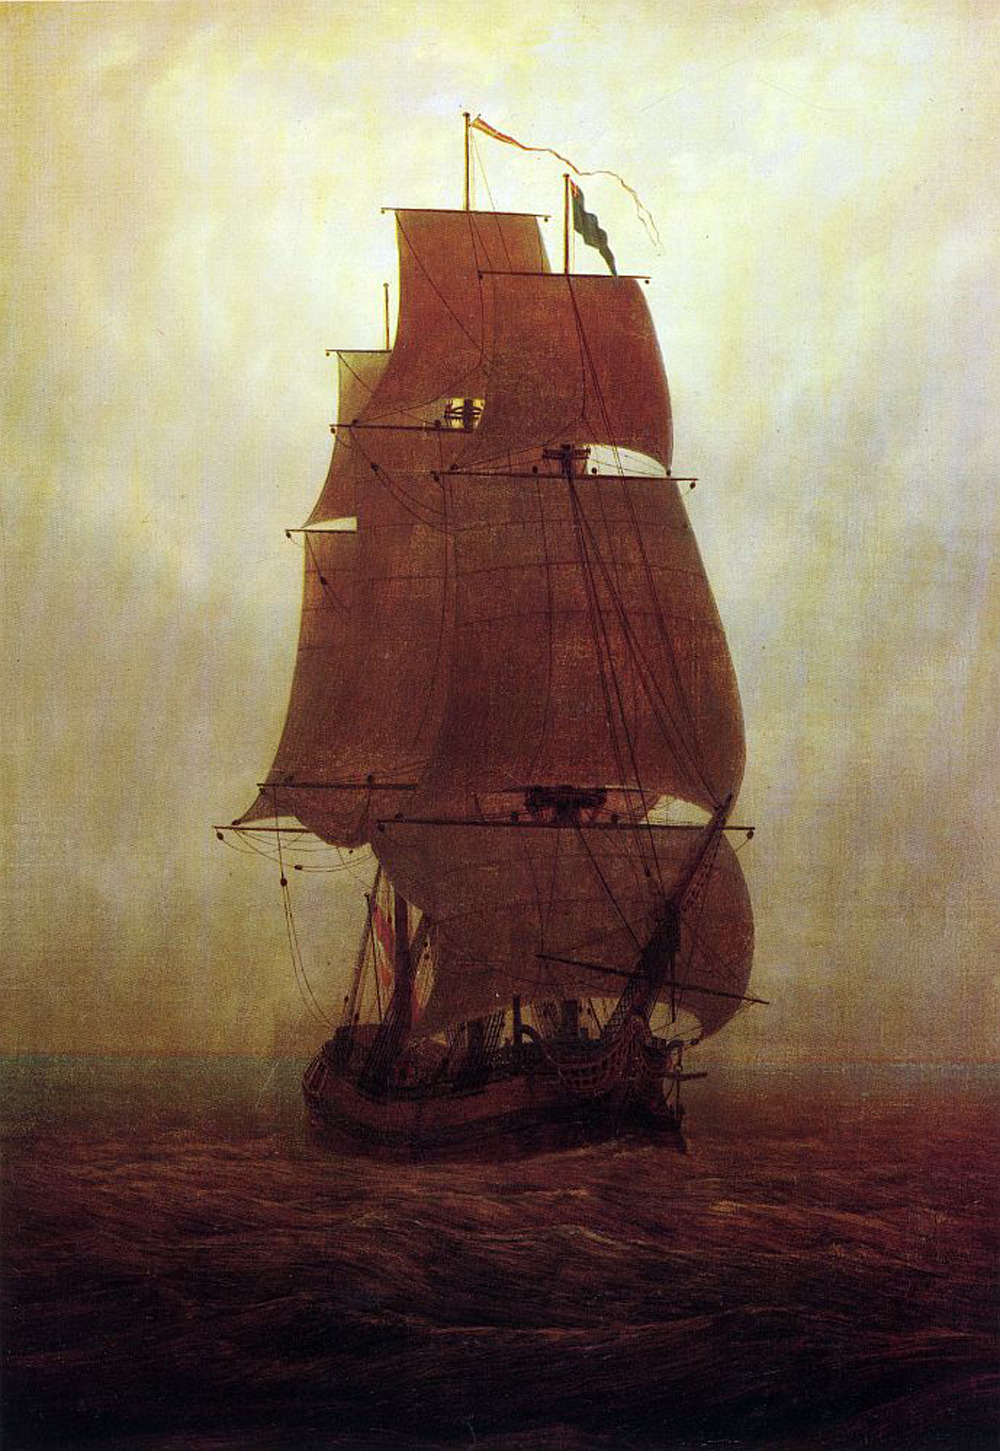 Caspar David Friedrich - Sailing Ship in the Fog (1815)